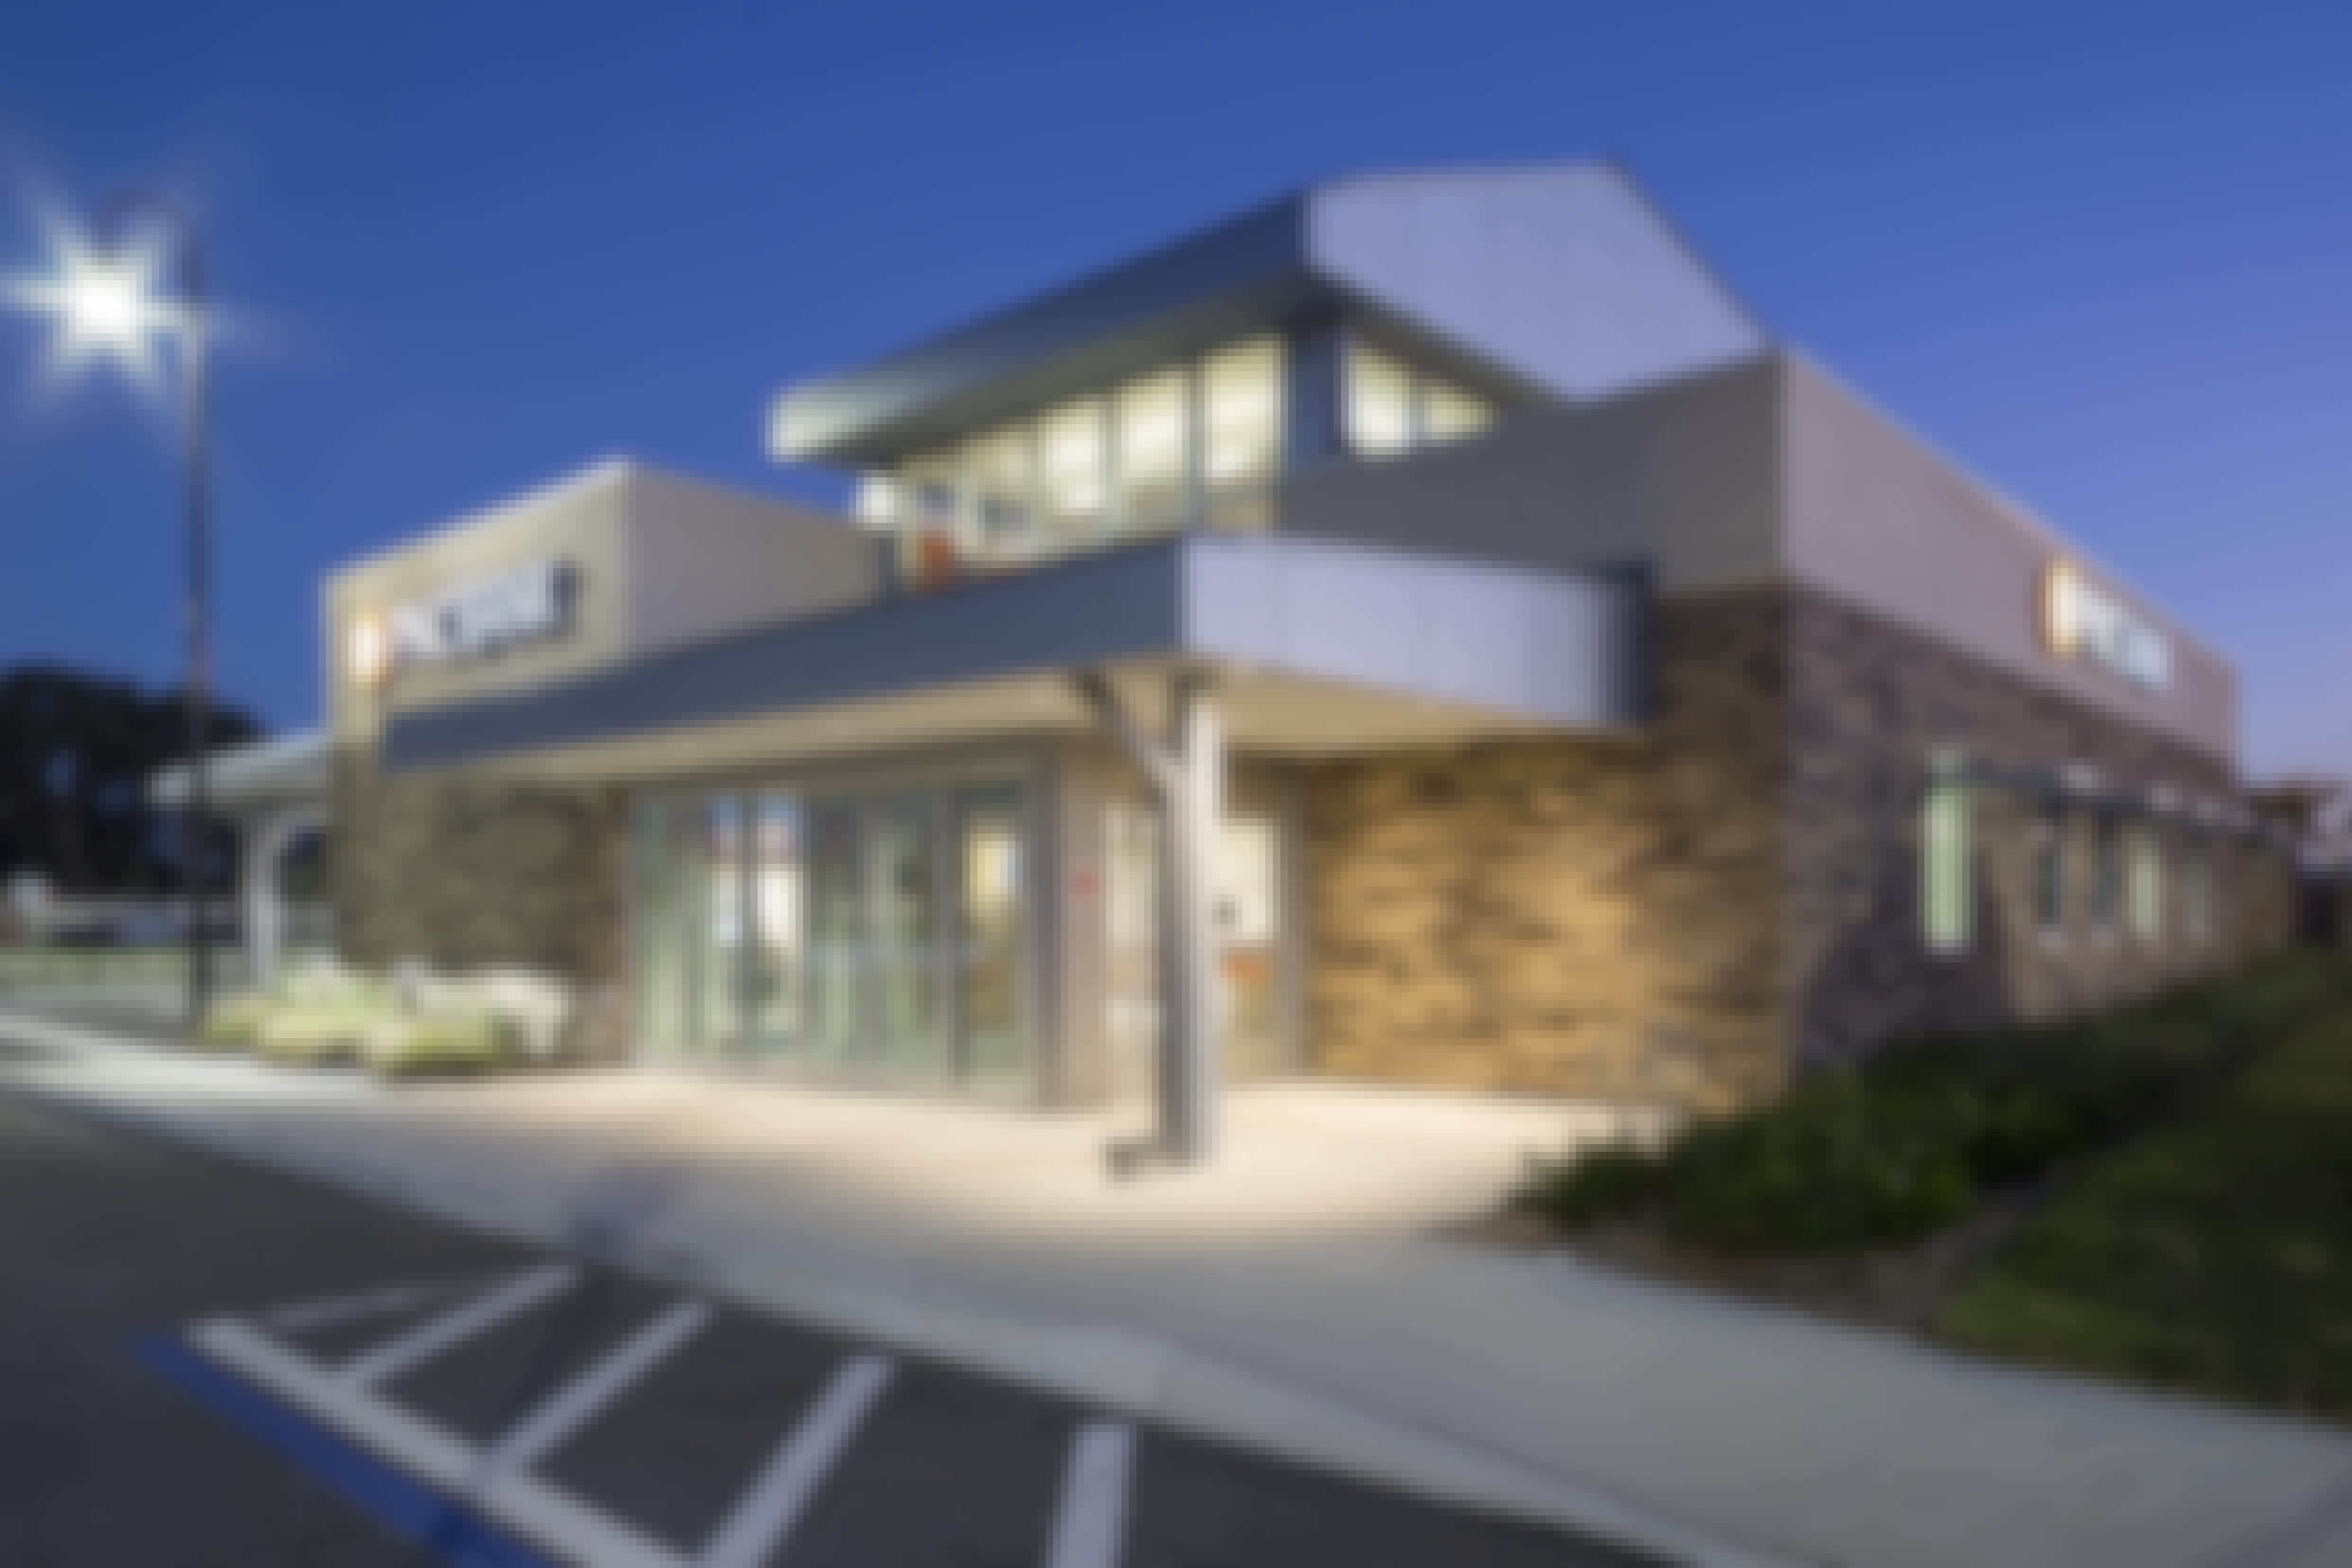 PNC provides ATM vestibules that are light, bright, and secure with frameleass glass walls